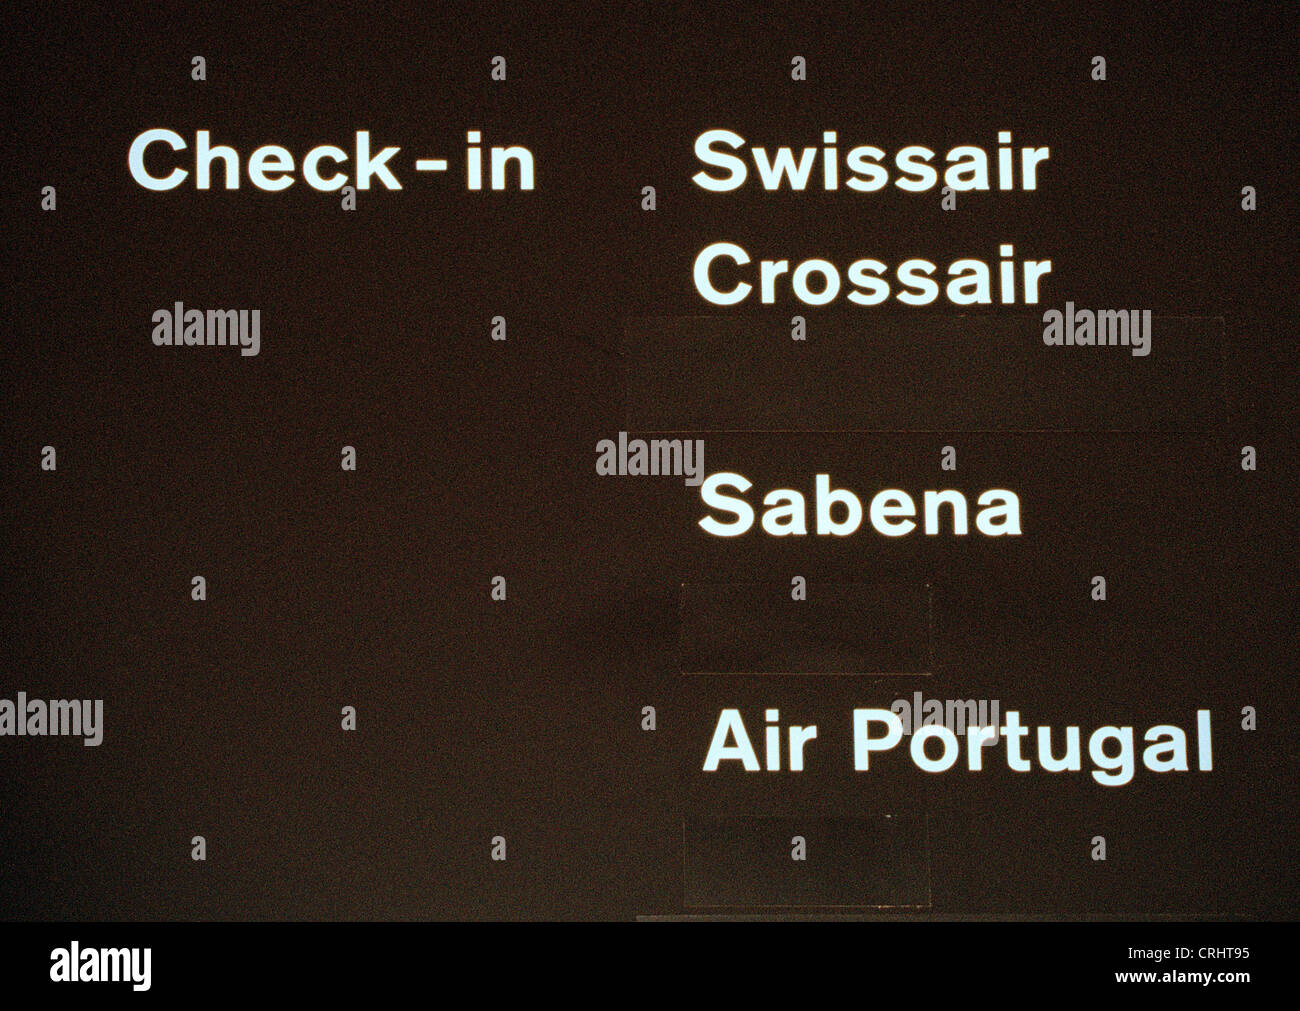 Information board for Swissair, Crossair, Sabena and Air Portugal - Stock Image